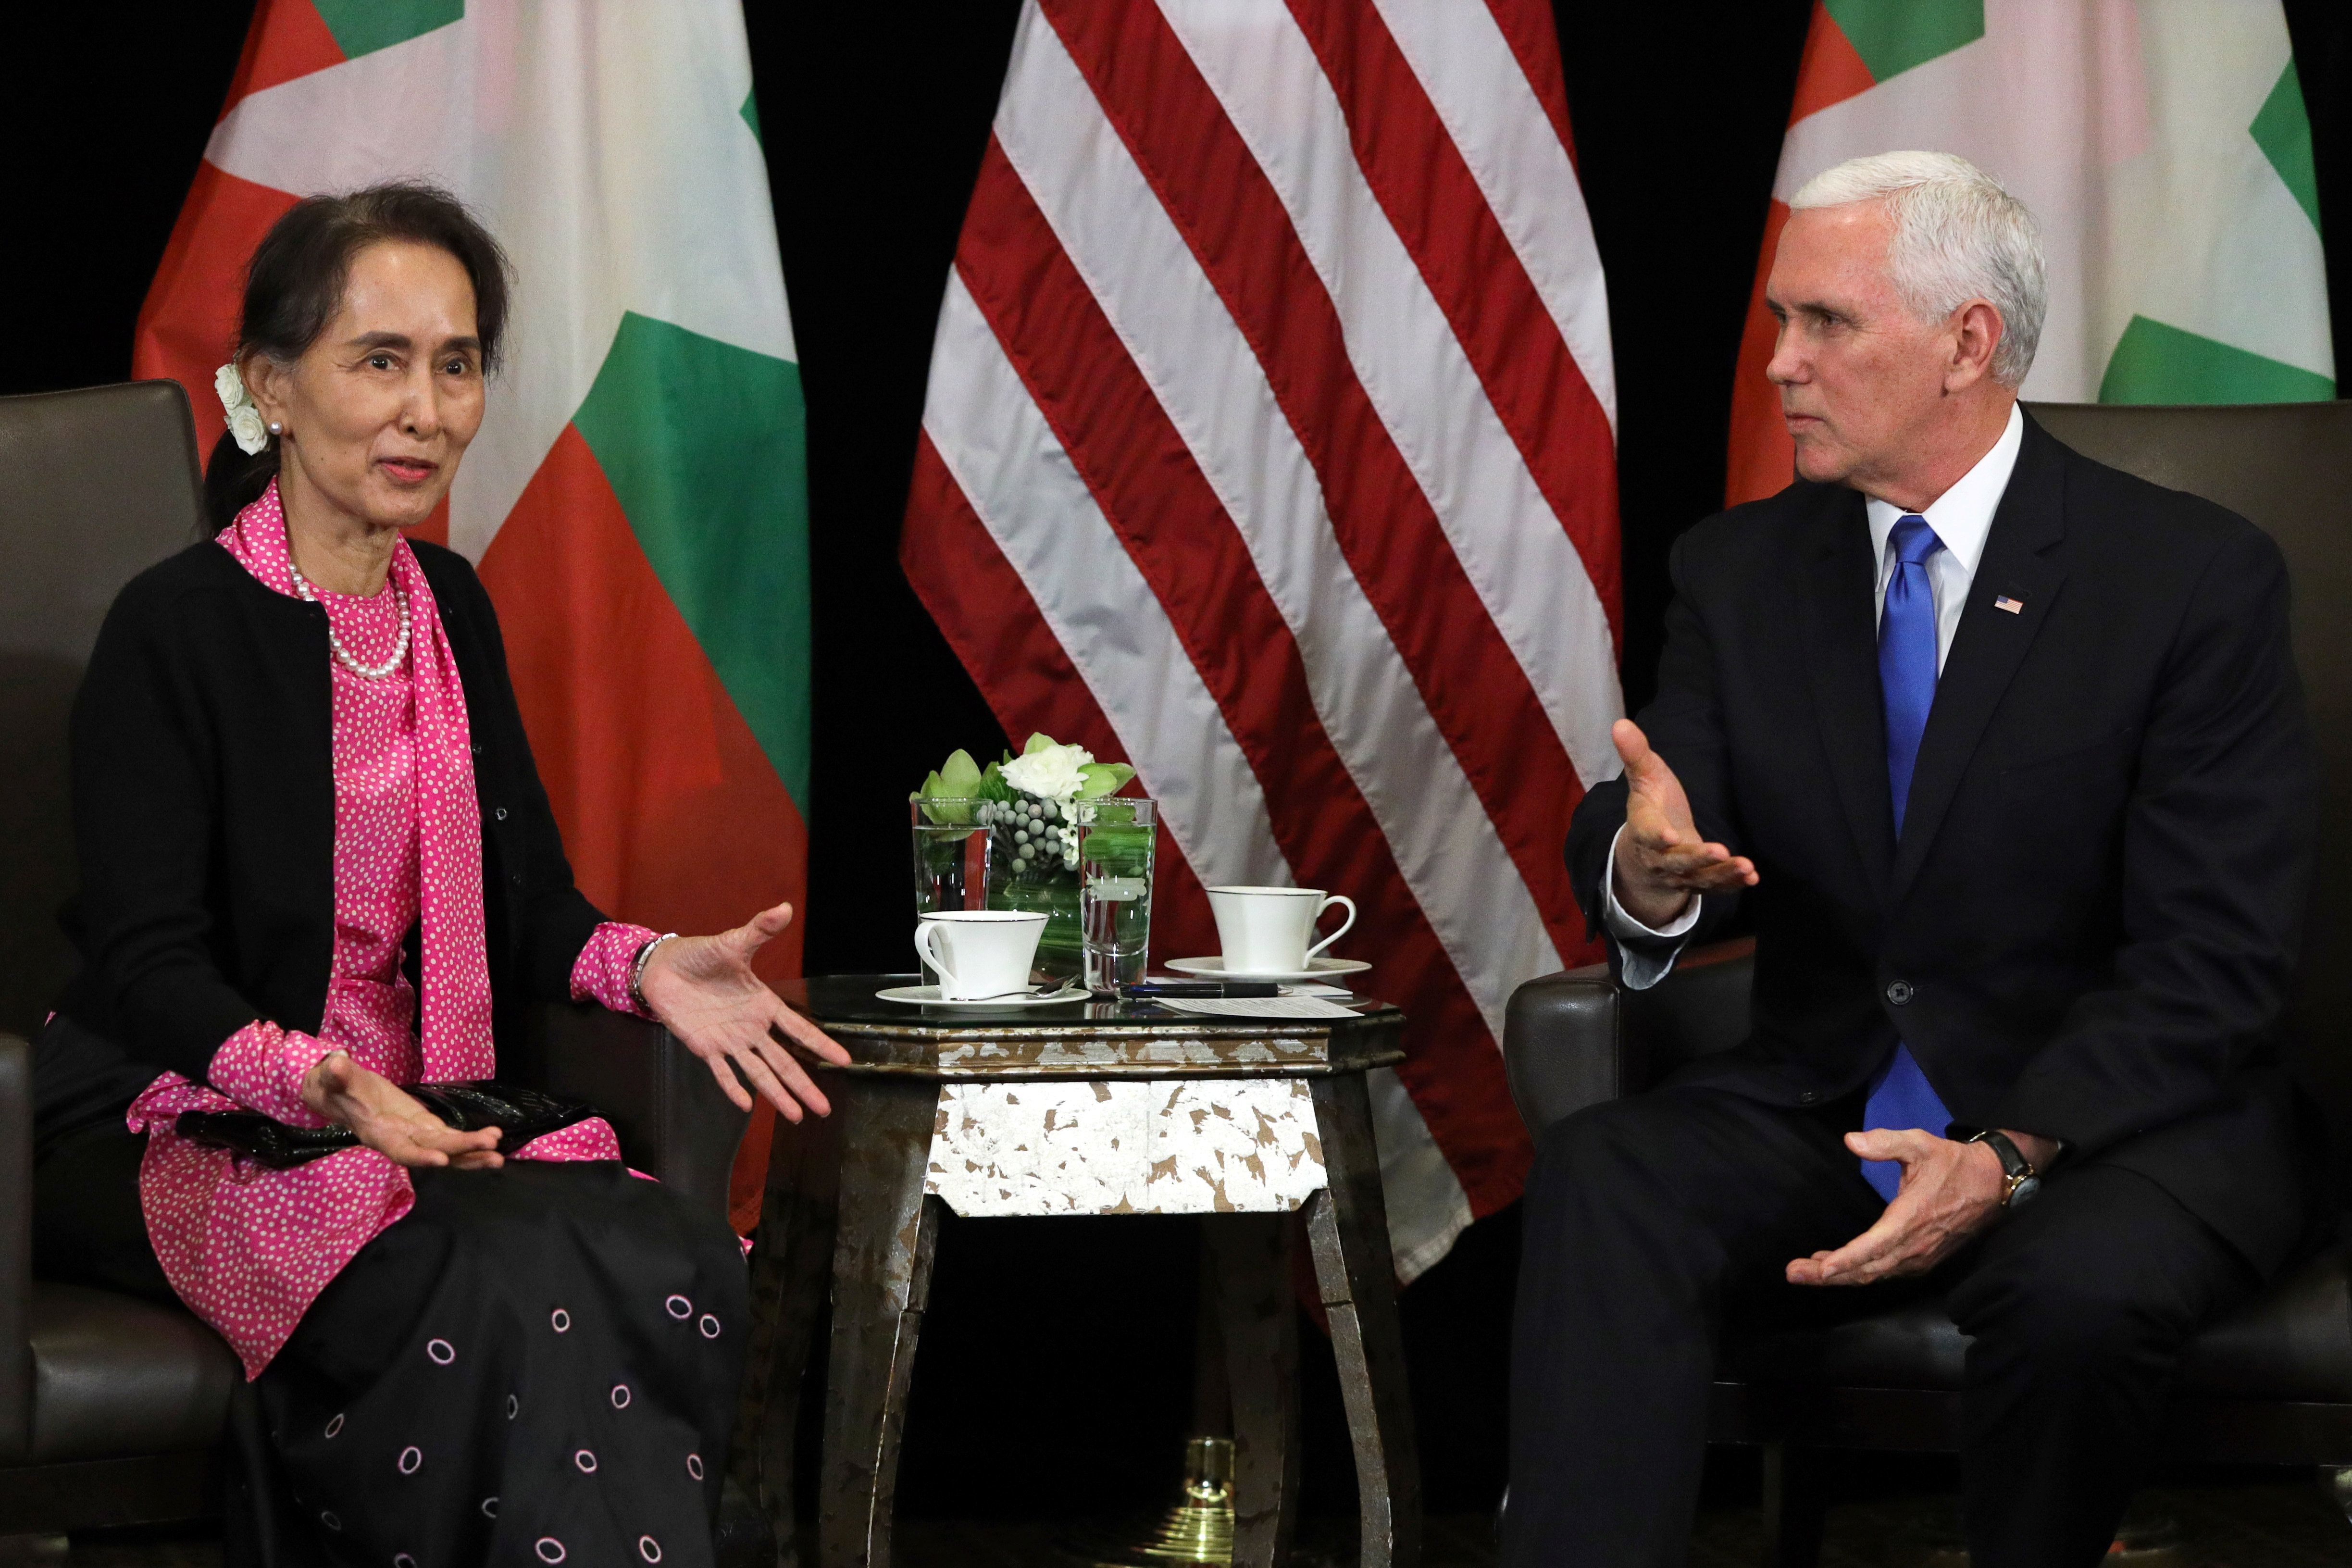 Myanmar's State Counsellor Aung San Suu Kyi and U.S. Vice President Mike Pence hold a bilateral meeting in Singapore, November 14, 2018. REUTERS/Athit Perawongmetha